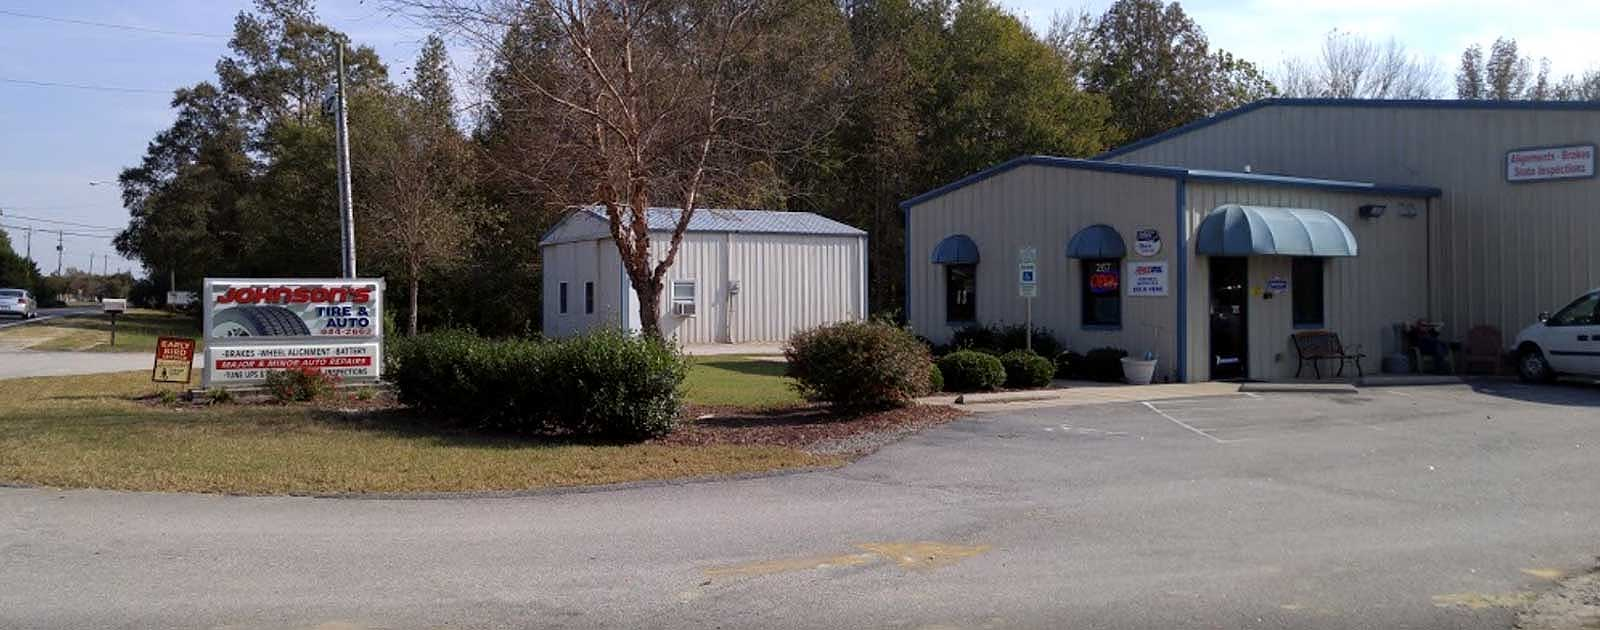 Johnson's Tire & Auto, Inc. | Auto Repair Shop in Smithfield, NC